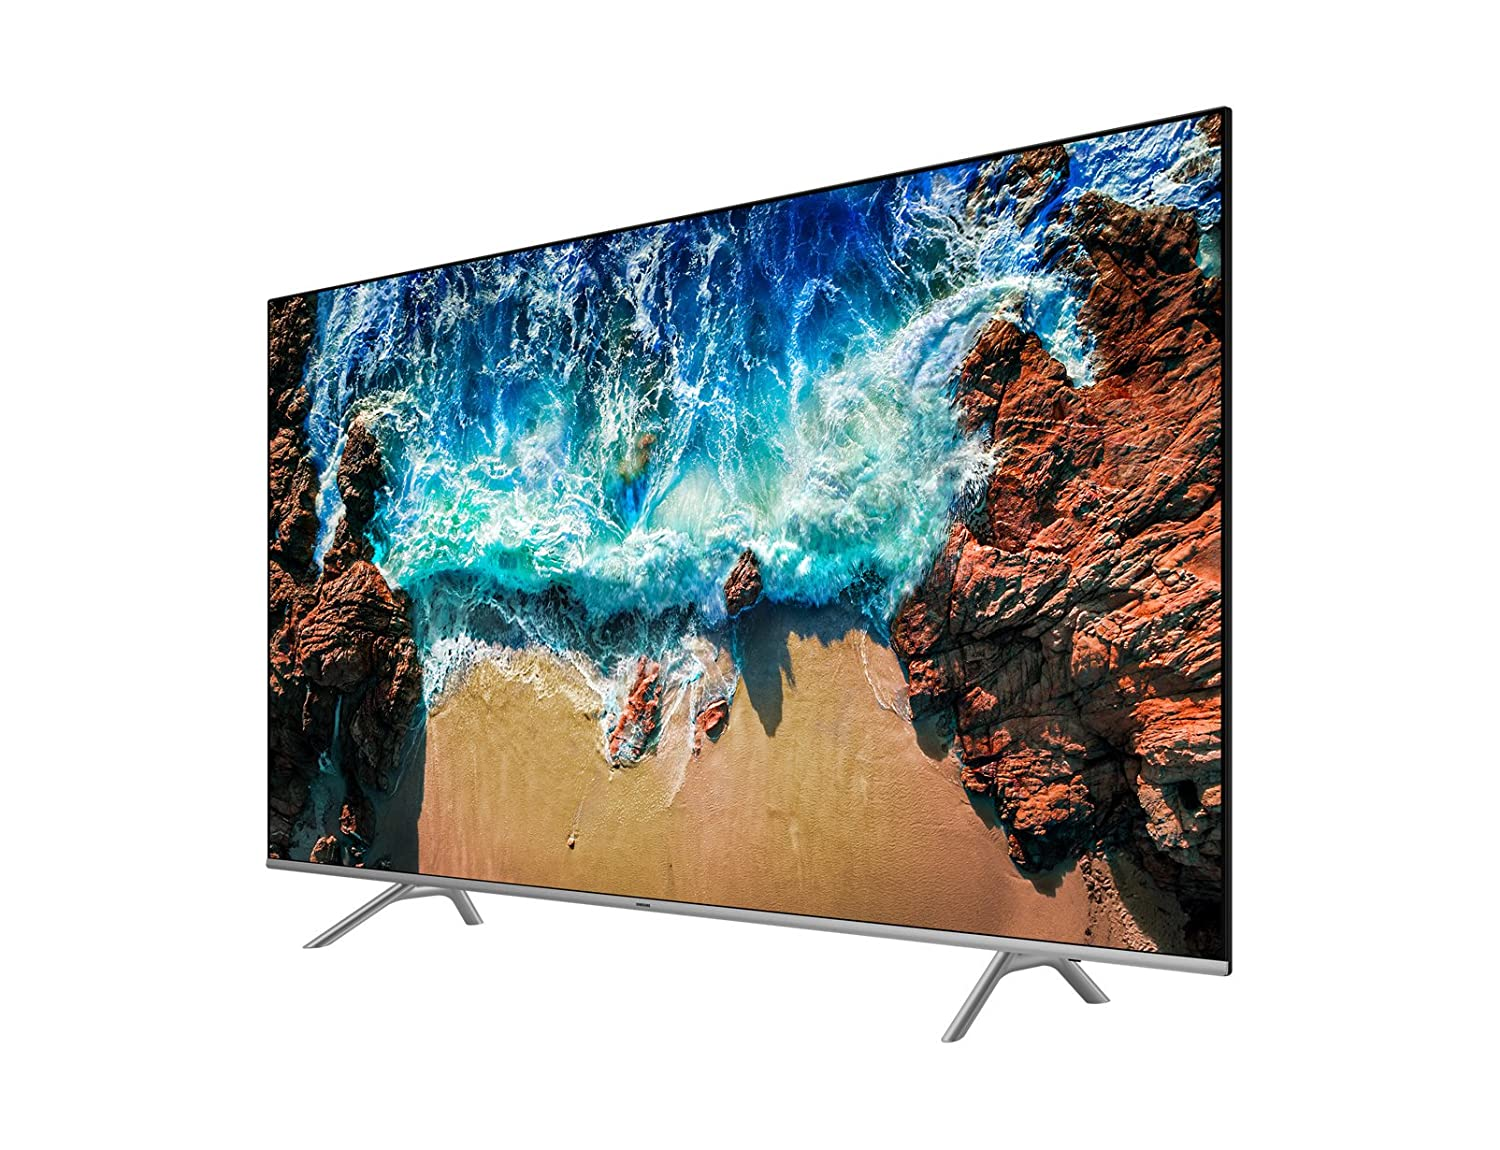 Samsung 55 Inch Premium UHD Smart TV